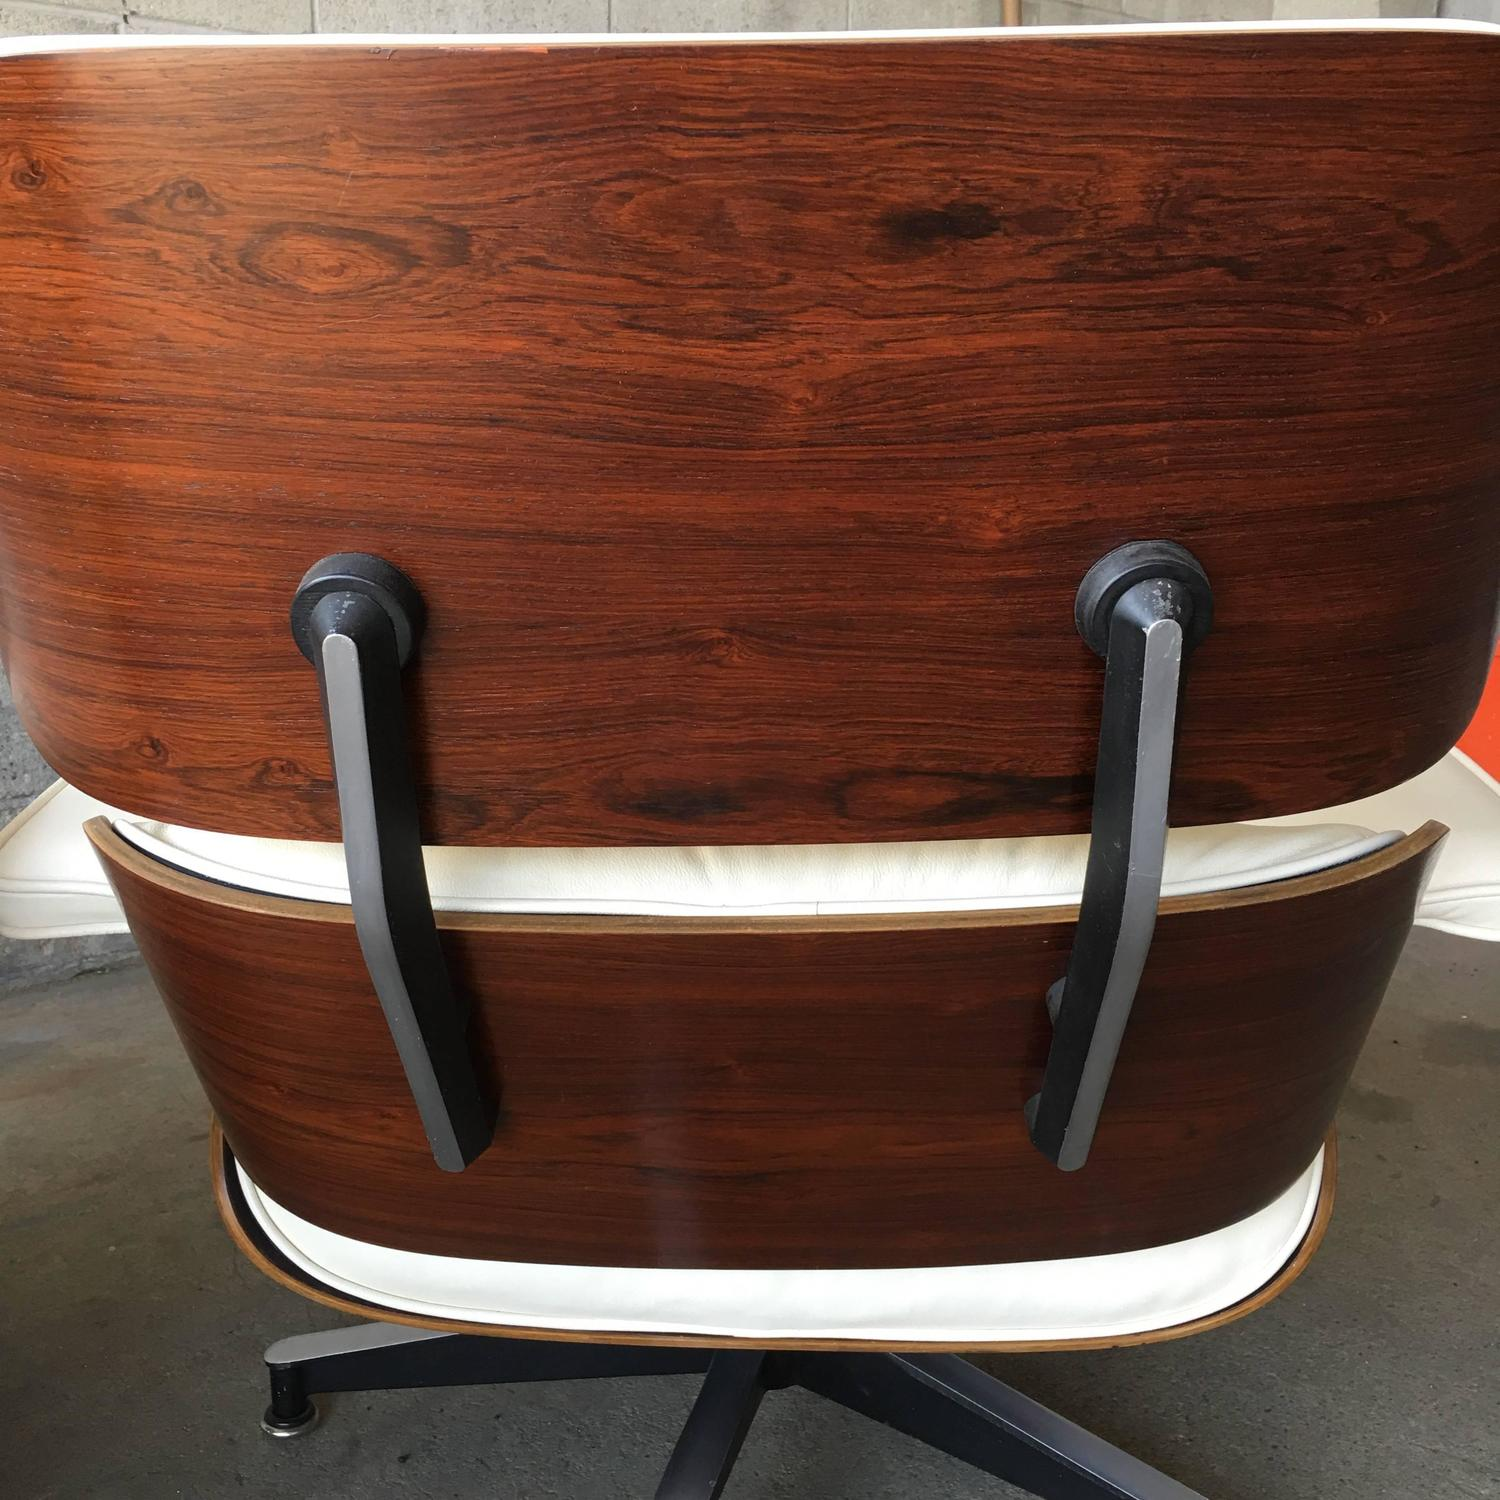 Herman Miller Eames Lounge Chair and Ottoman Set For Sale at 1stdibs